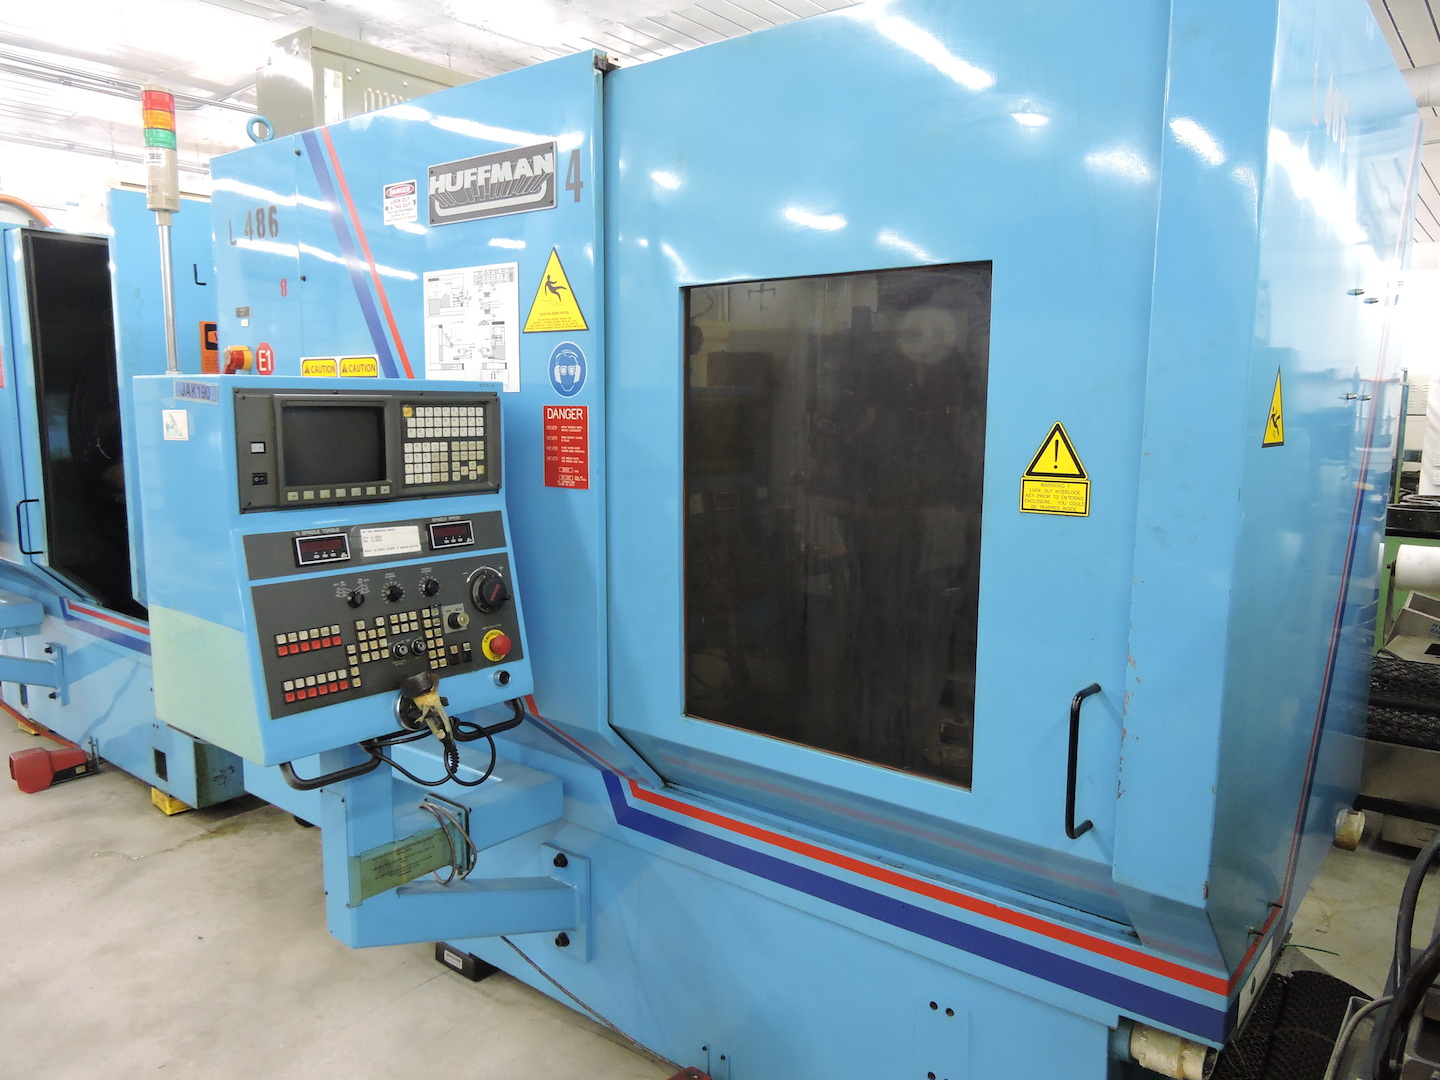 Lot 45 - HUFFMAN HS-195 5 AXIS GRINDER WITH FANUC 16 (LOCATION - DEERFIELD BEACH, FL) S/N 0977, (2006), GE